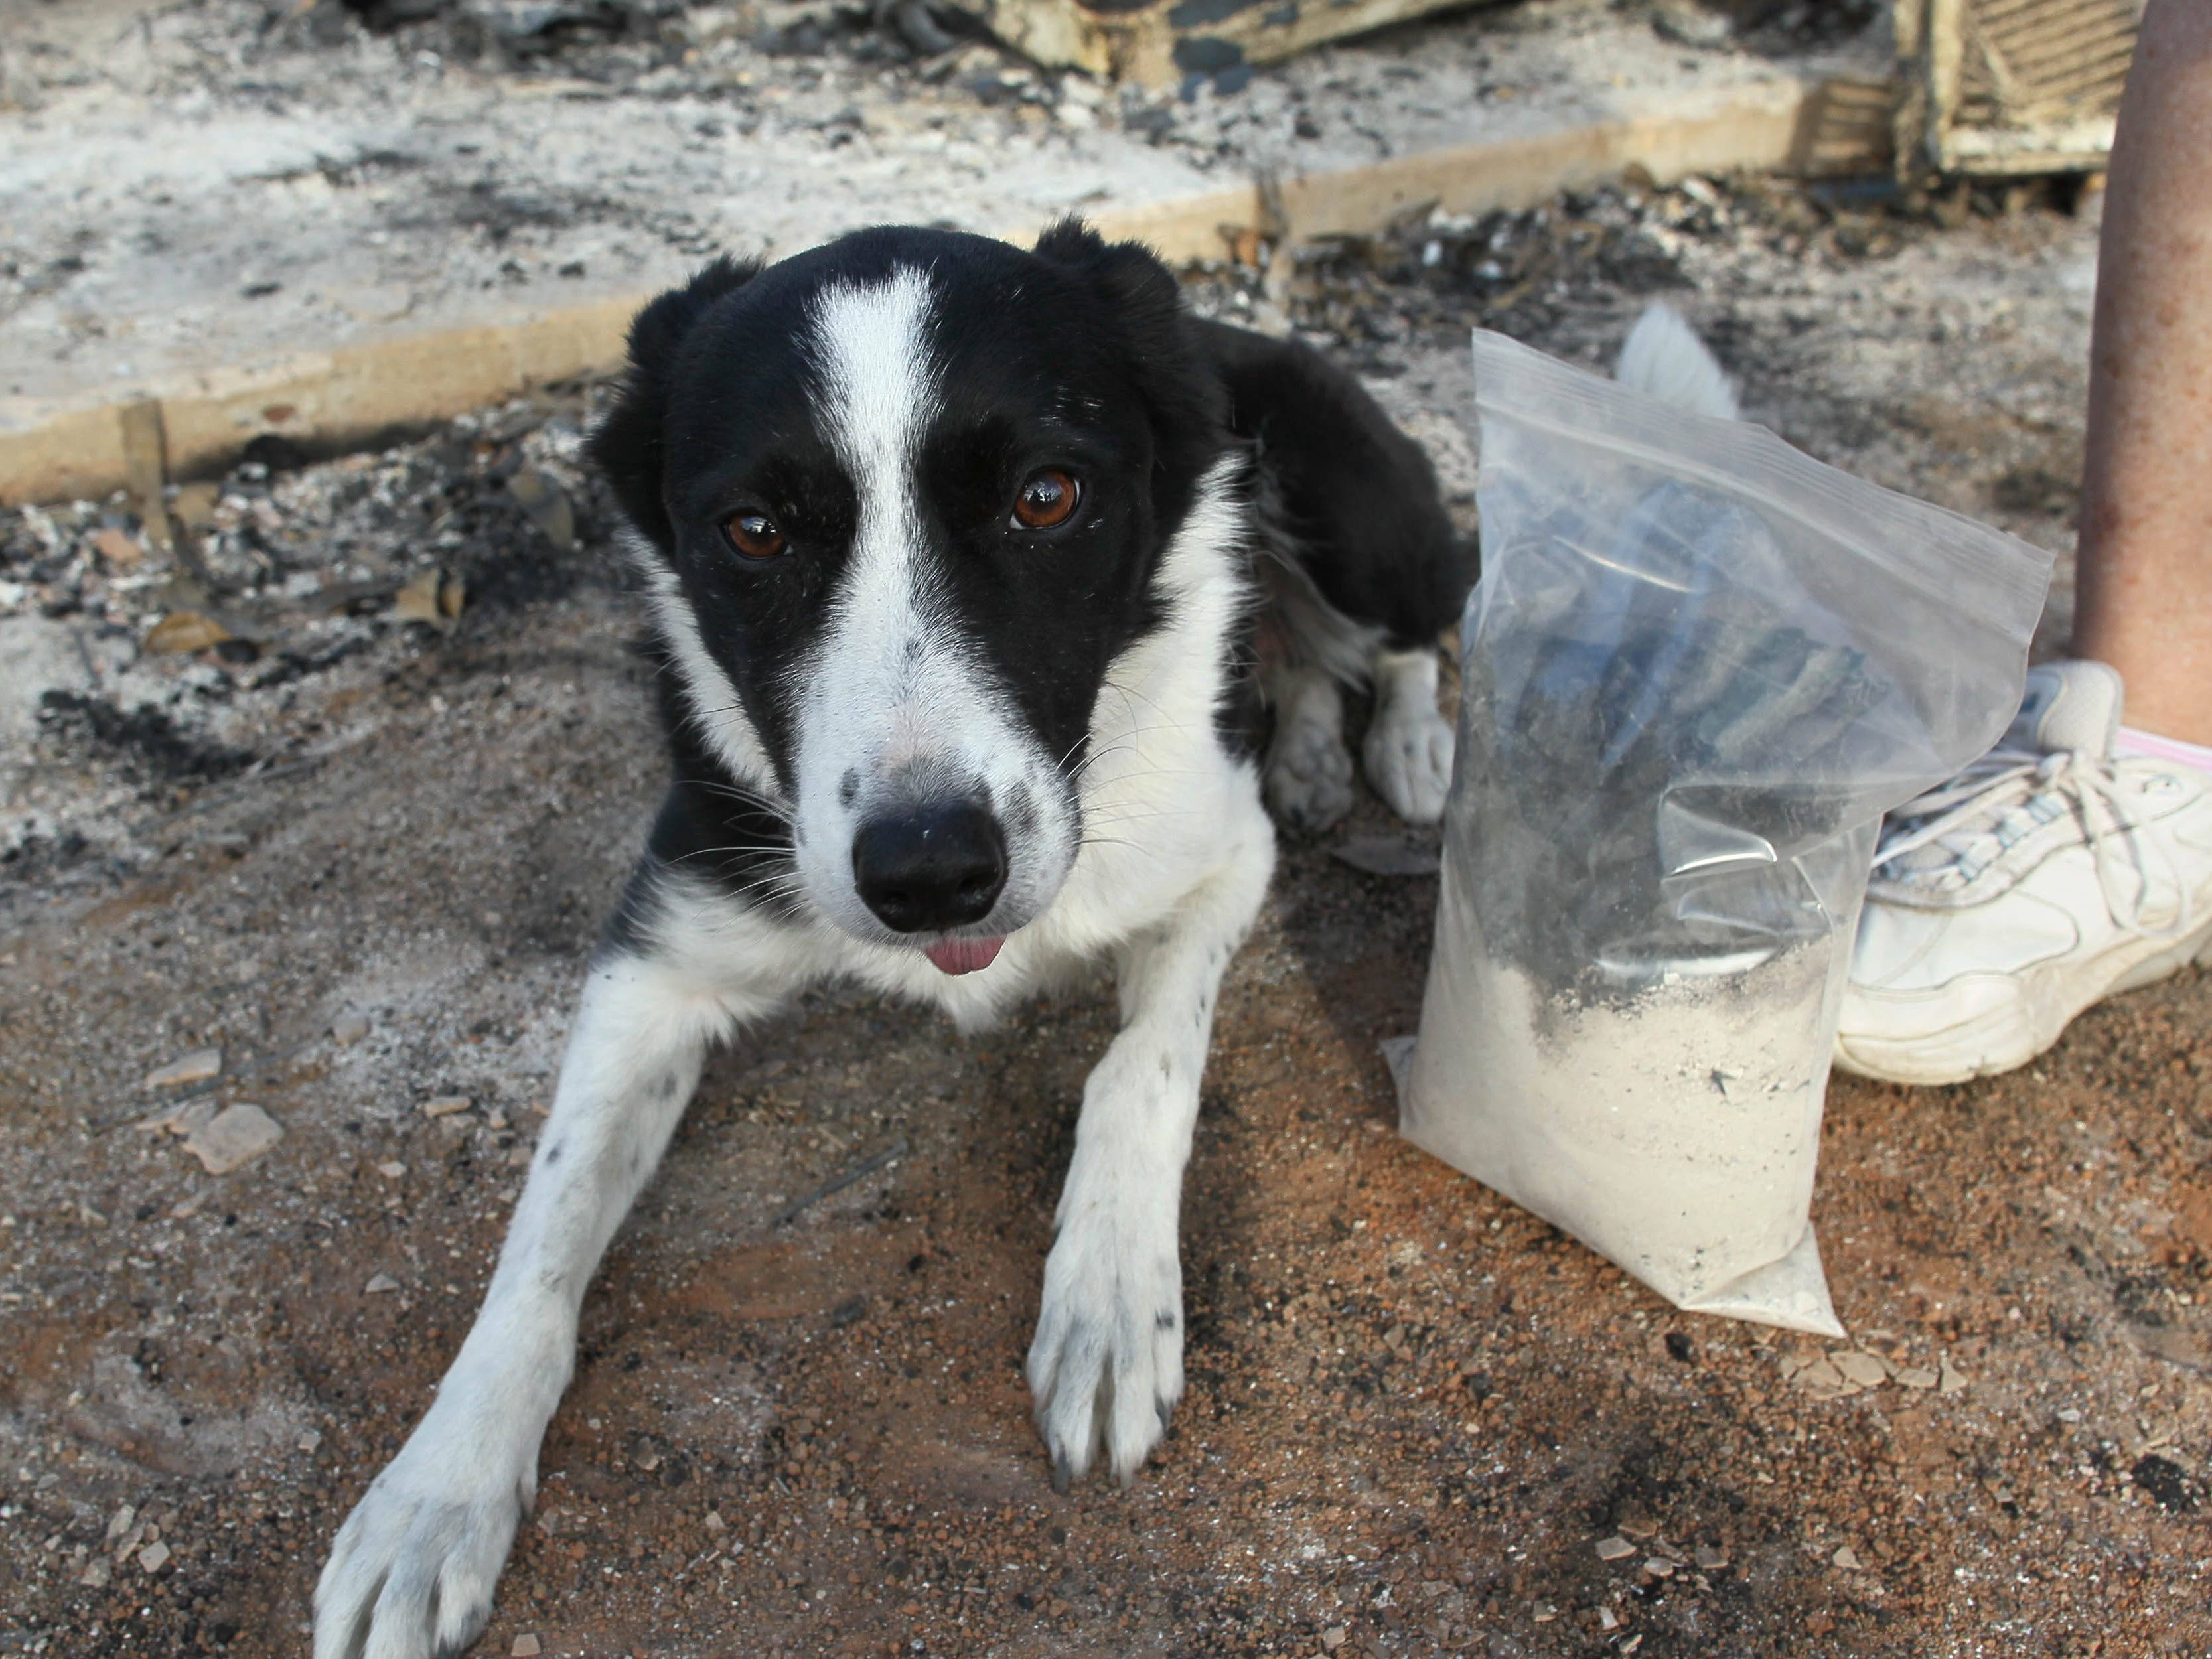 Piper, the cremain-sniffing border collie, liess next to the cremains recovered on Saturday, Sept. 29, 2018. (Hung T. Vu/Special to the Record Searchlight)